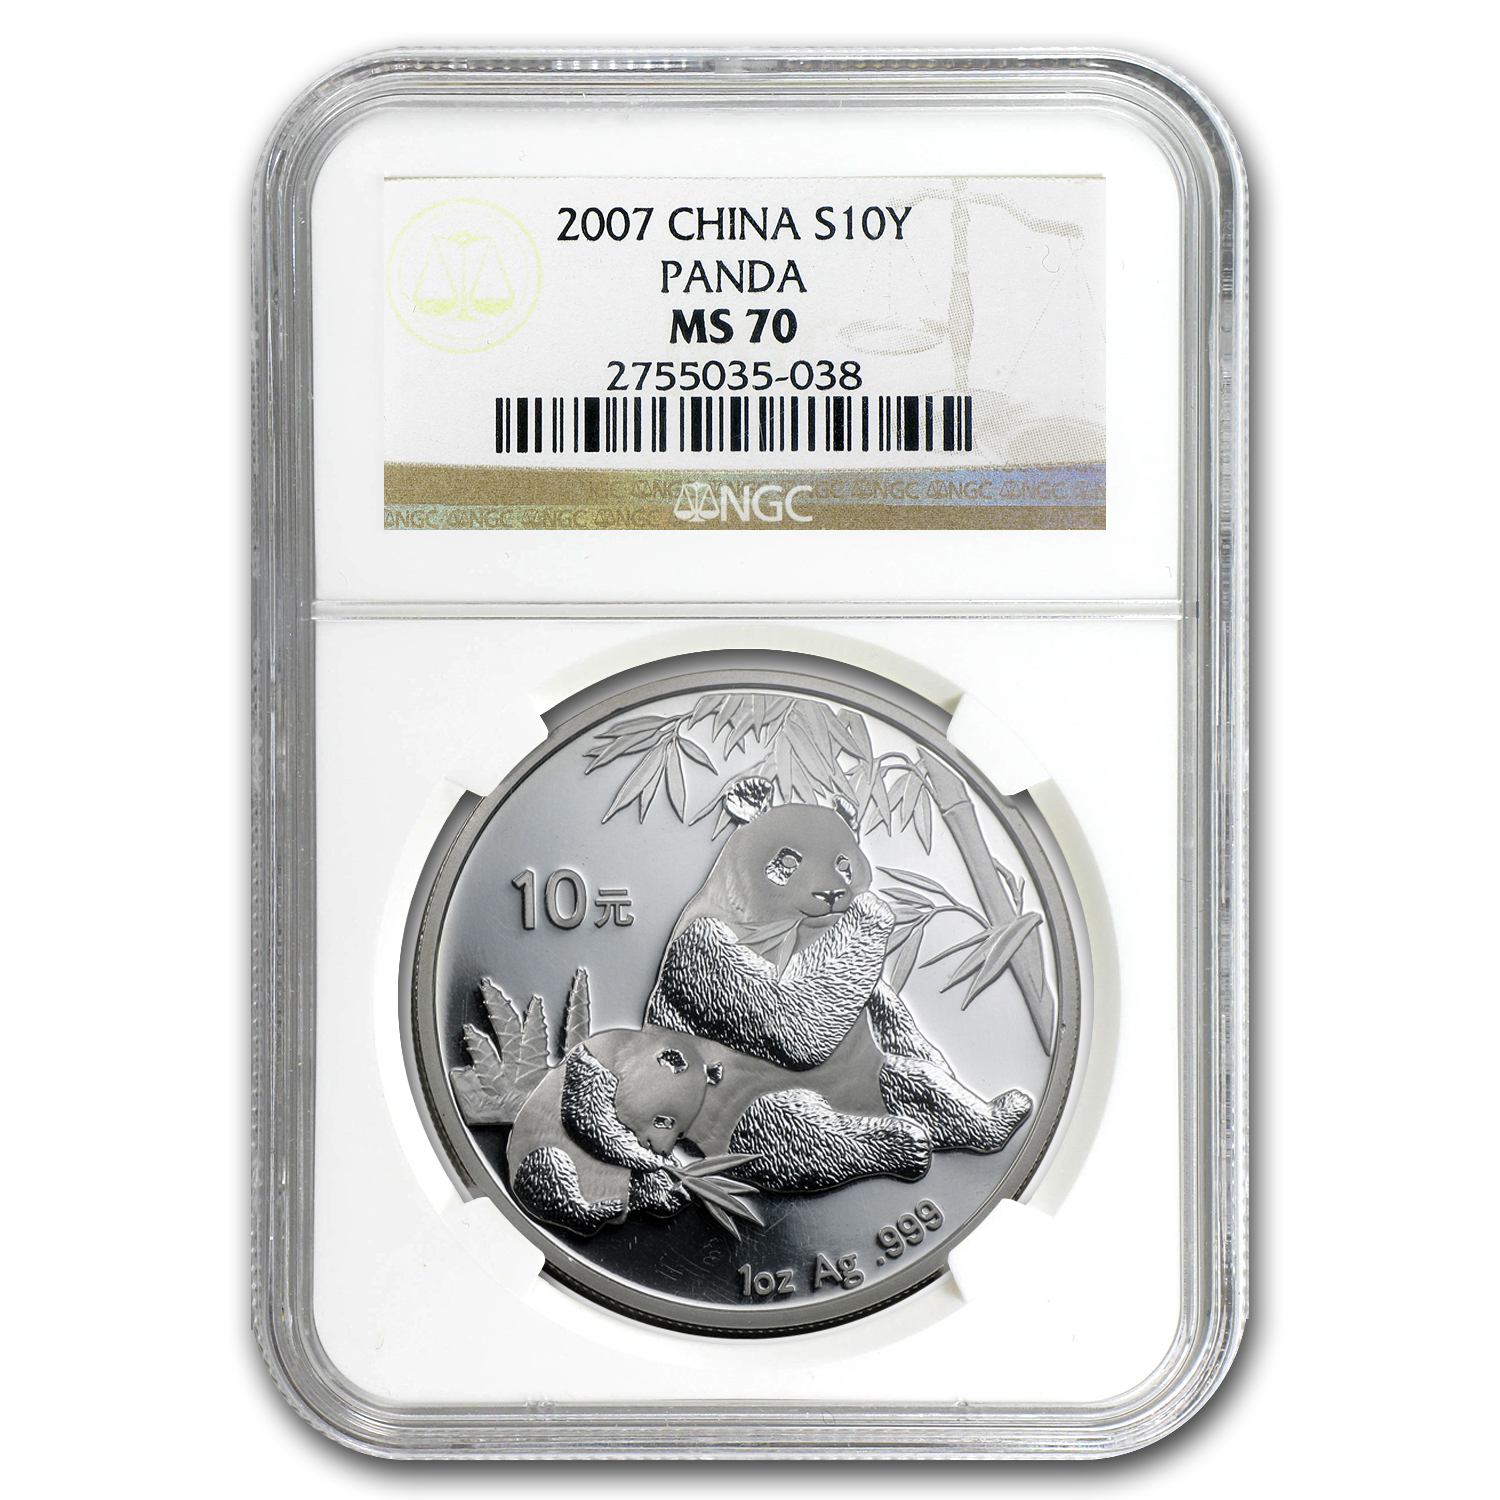 2007 1 oz Silver Chinese Panda MS-70 NGC